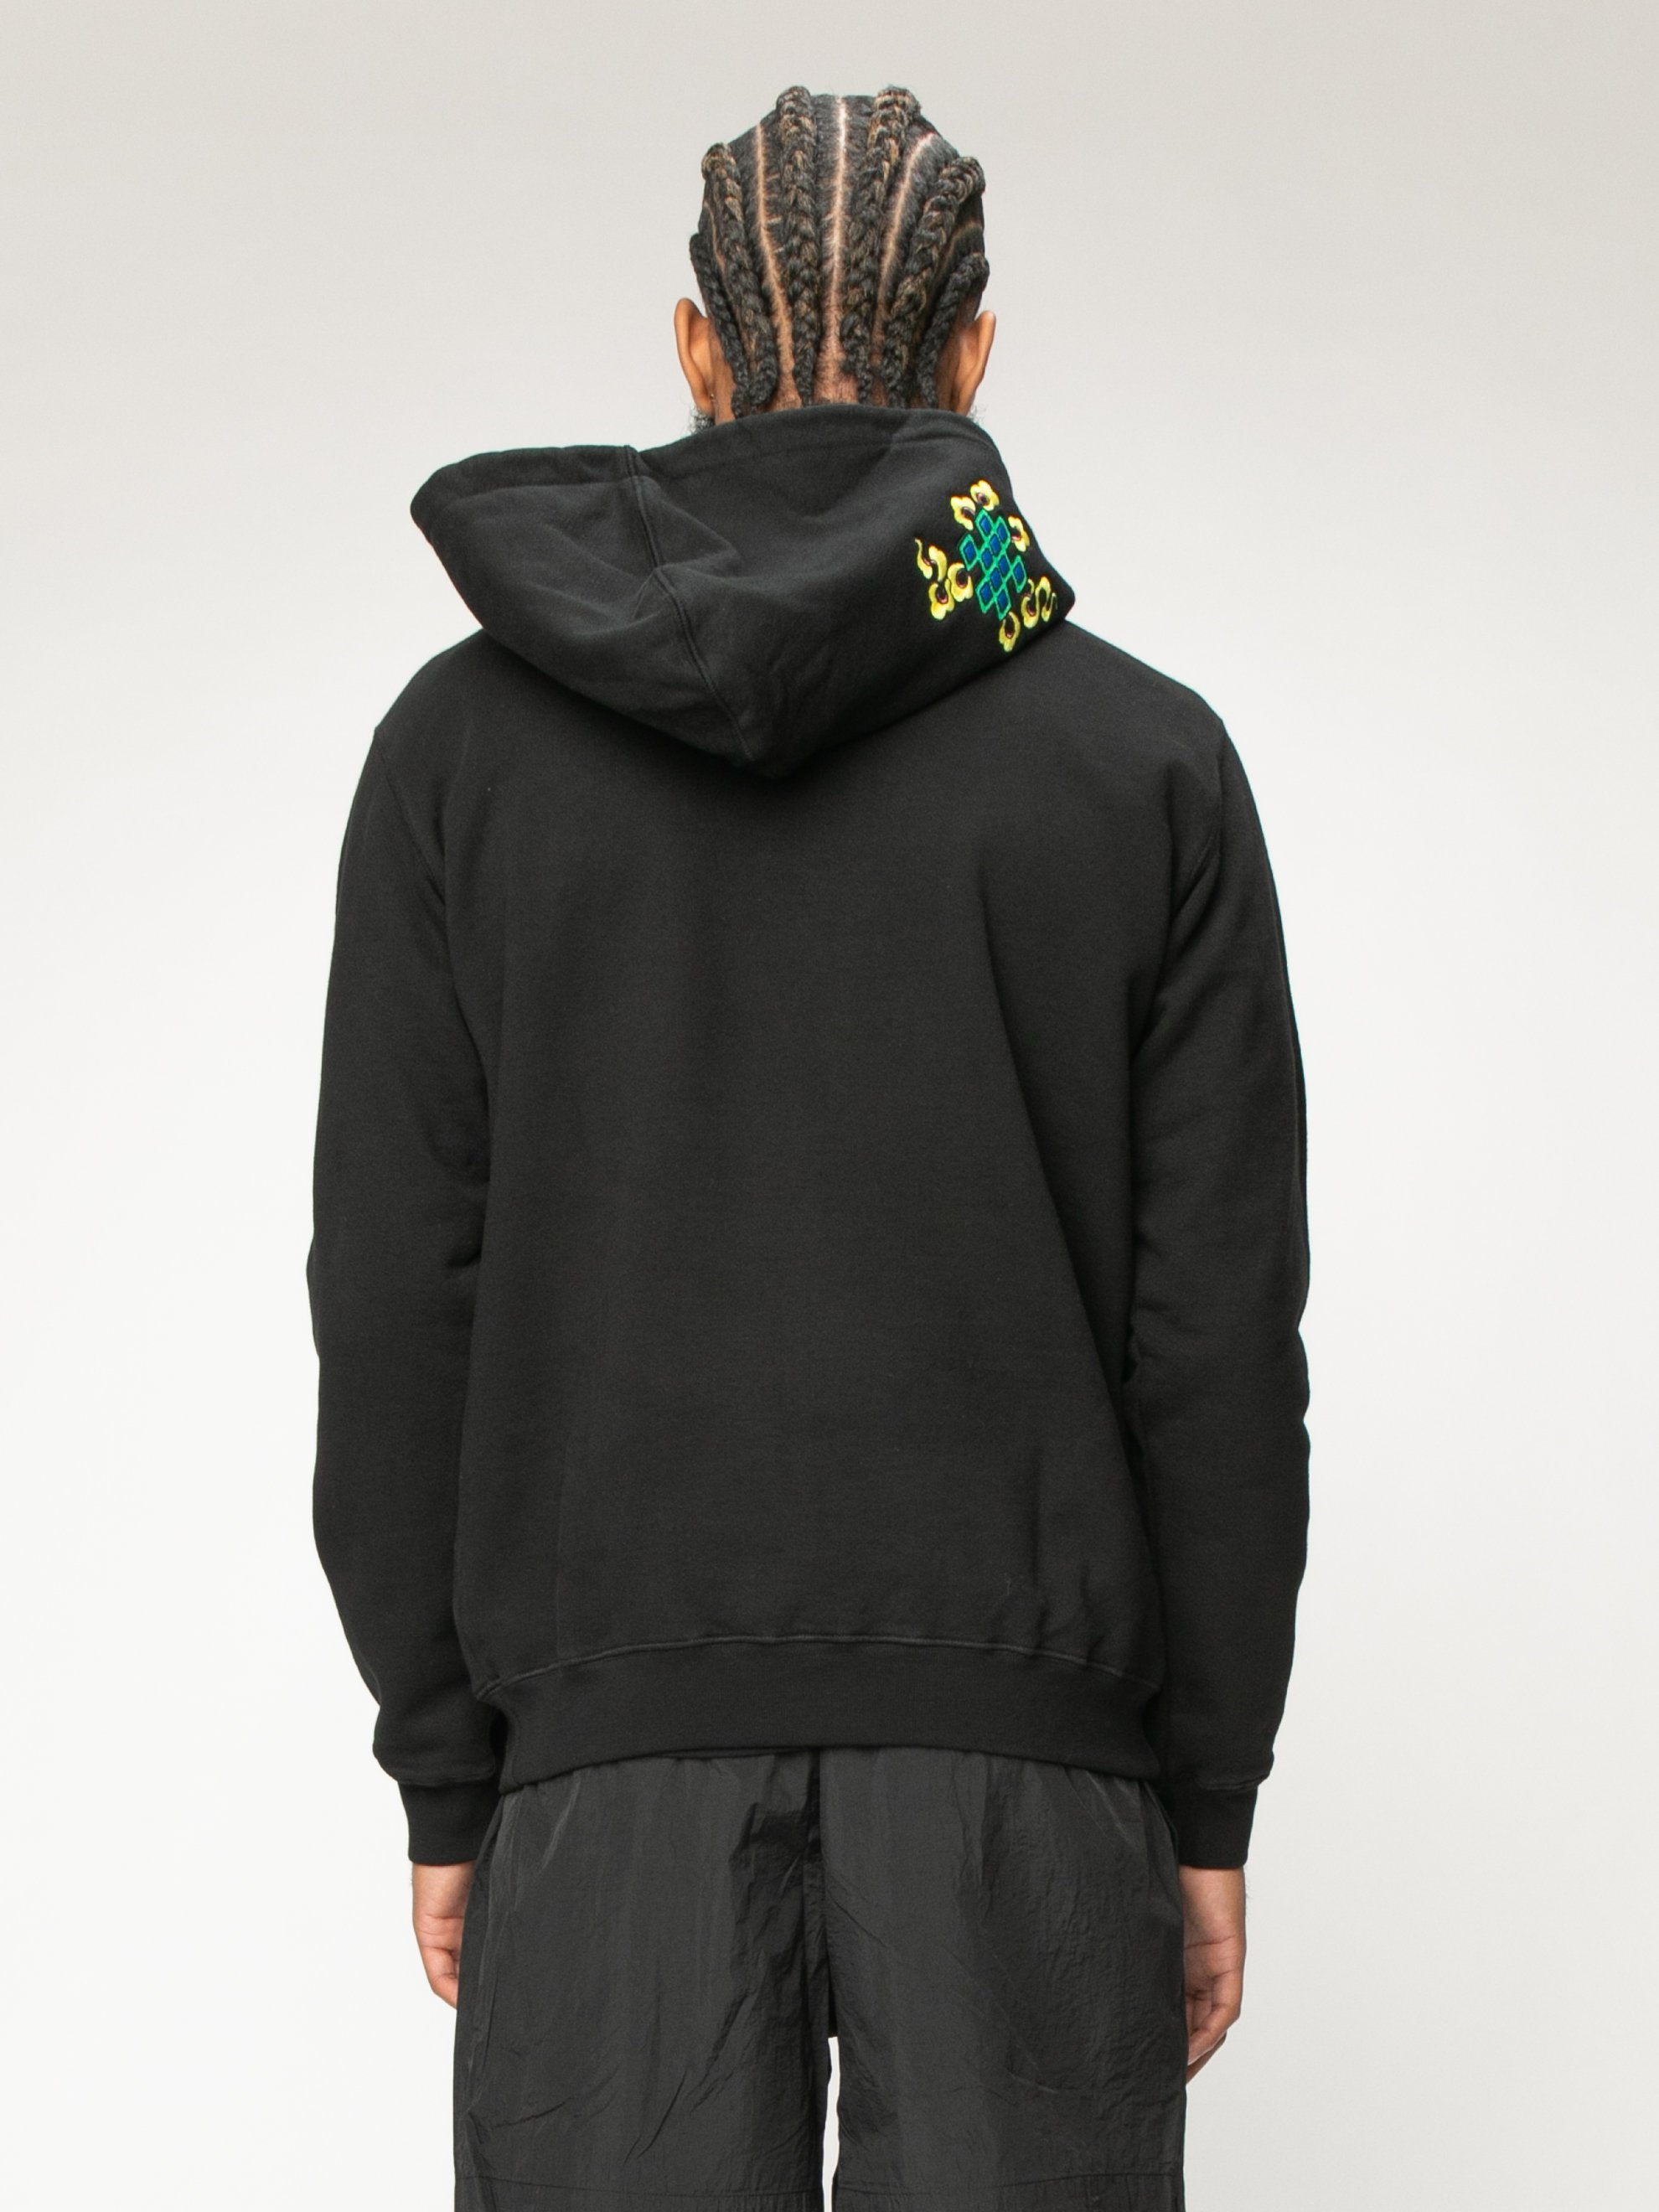 Black 999 Embrodered Hoody 6